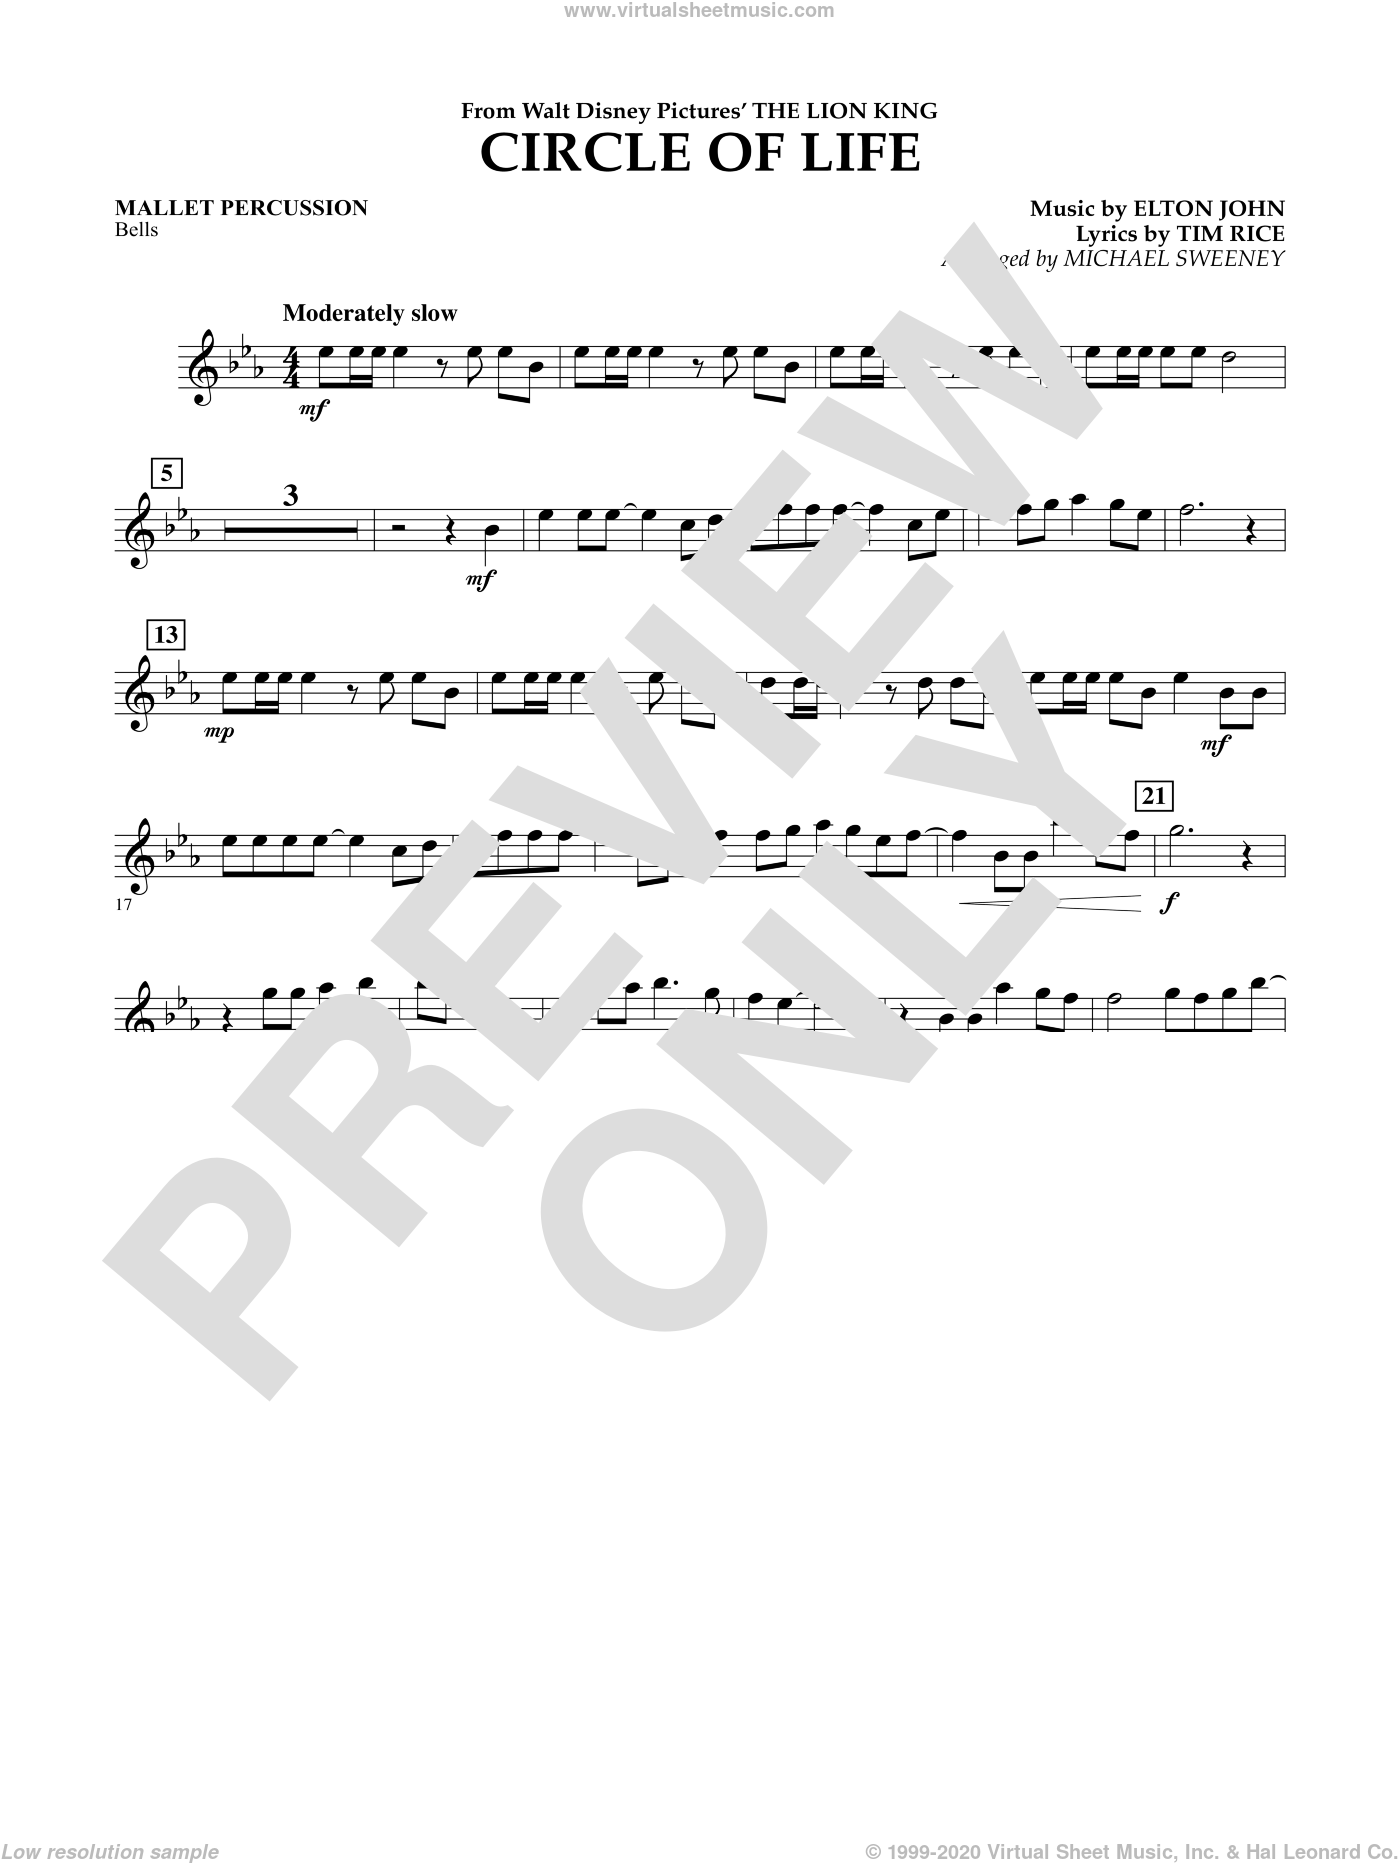 Circle of Life (from The Lion King) sheet music for concert band (mallet percussion) by Tim Rice